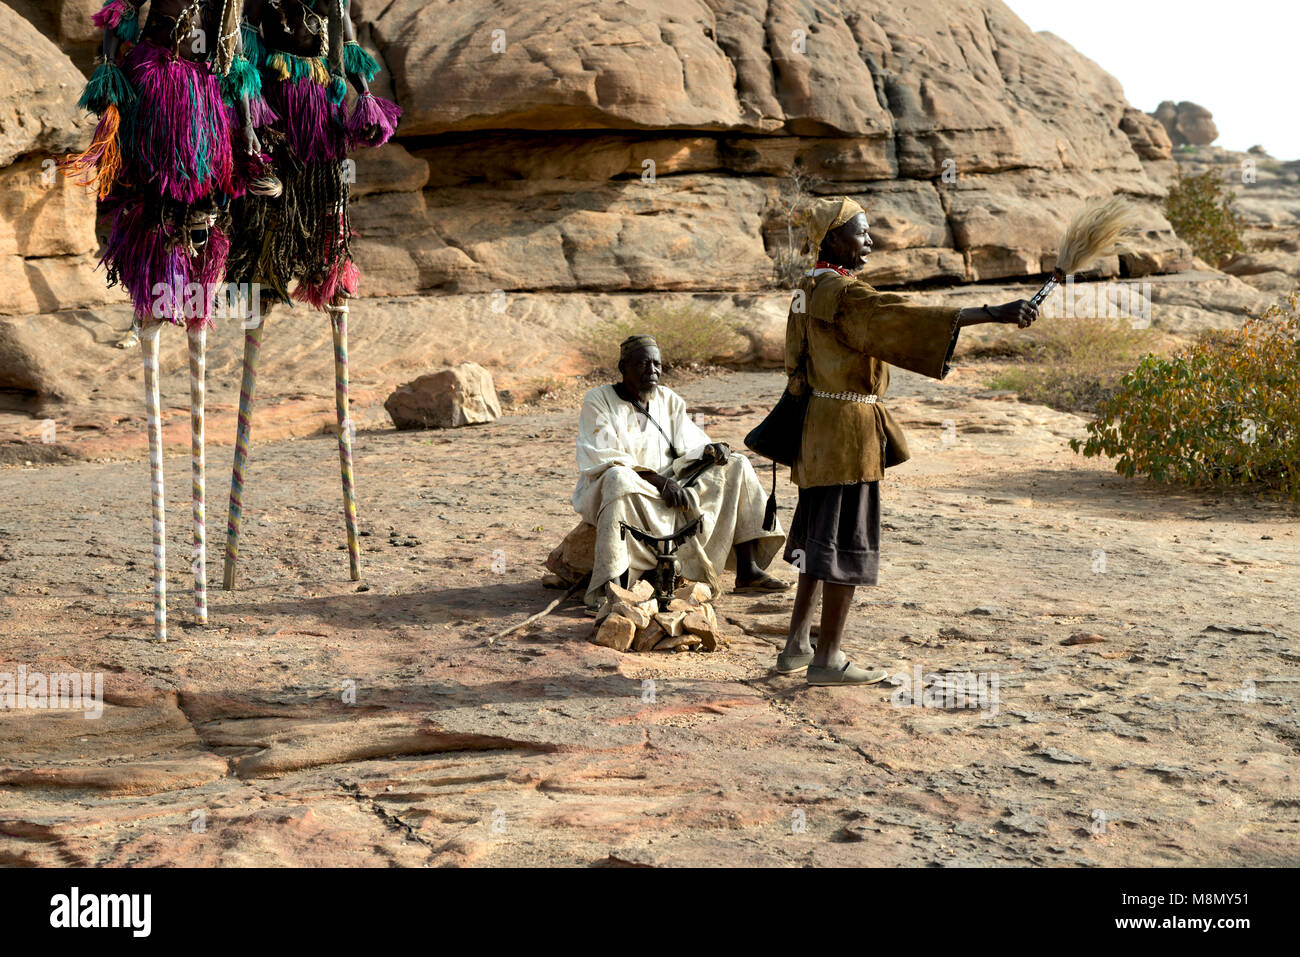 The final act of a traditional, ritual Dogon masked dance ceremony. Dogon country, Mali, West Africa. - Stock Image